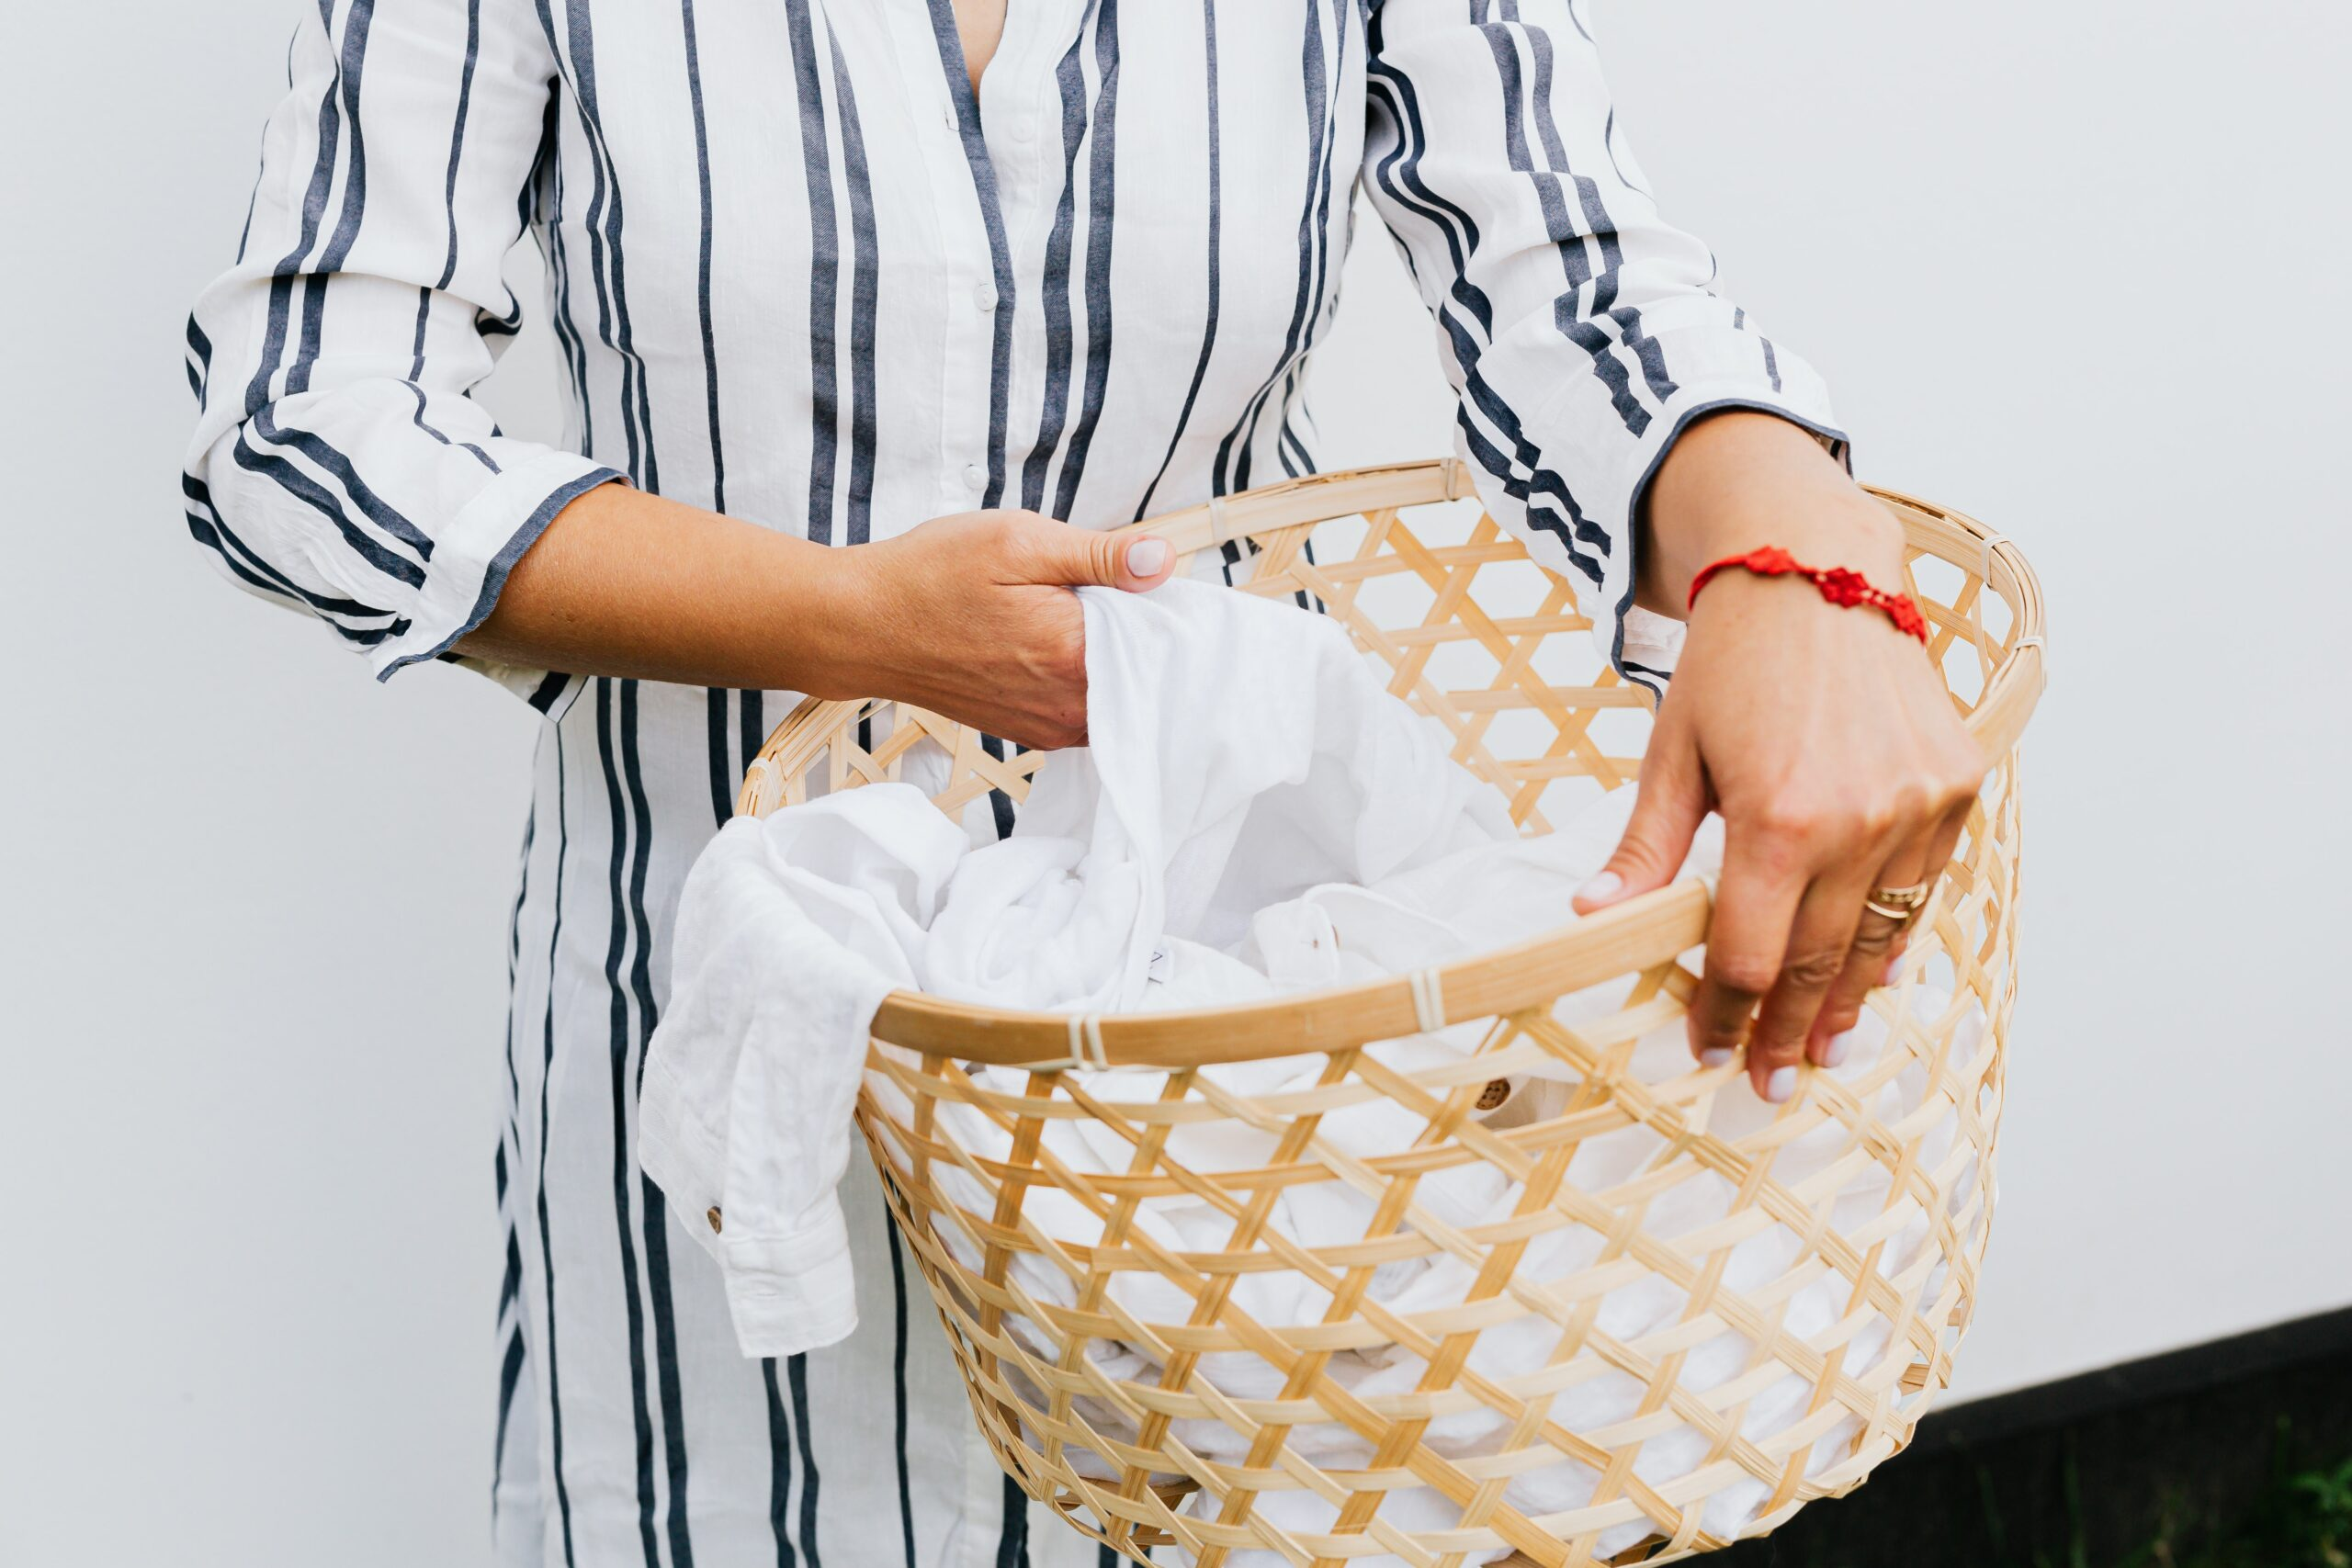 Things to Check When Buying Laundry Essentials